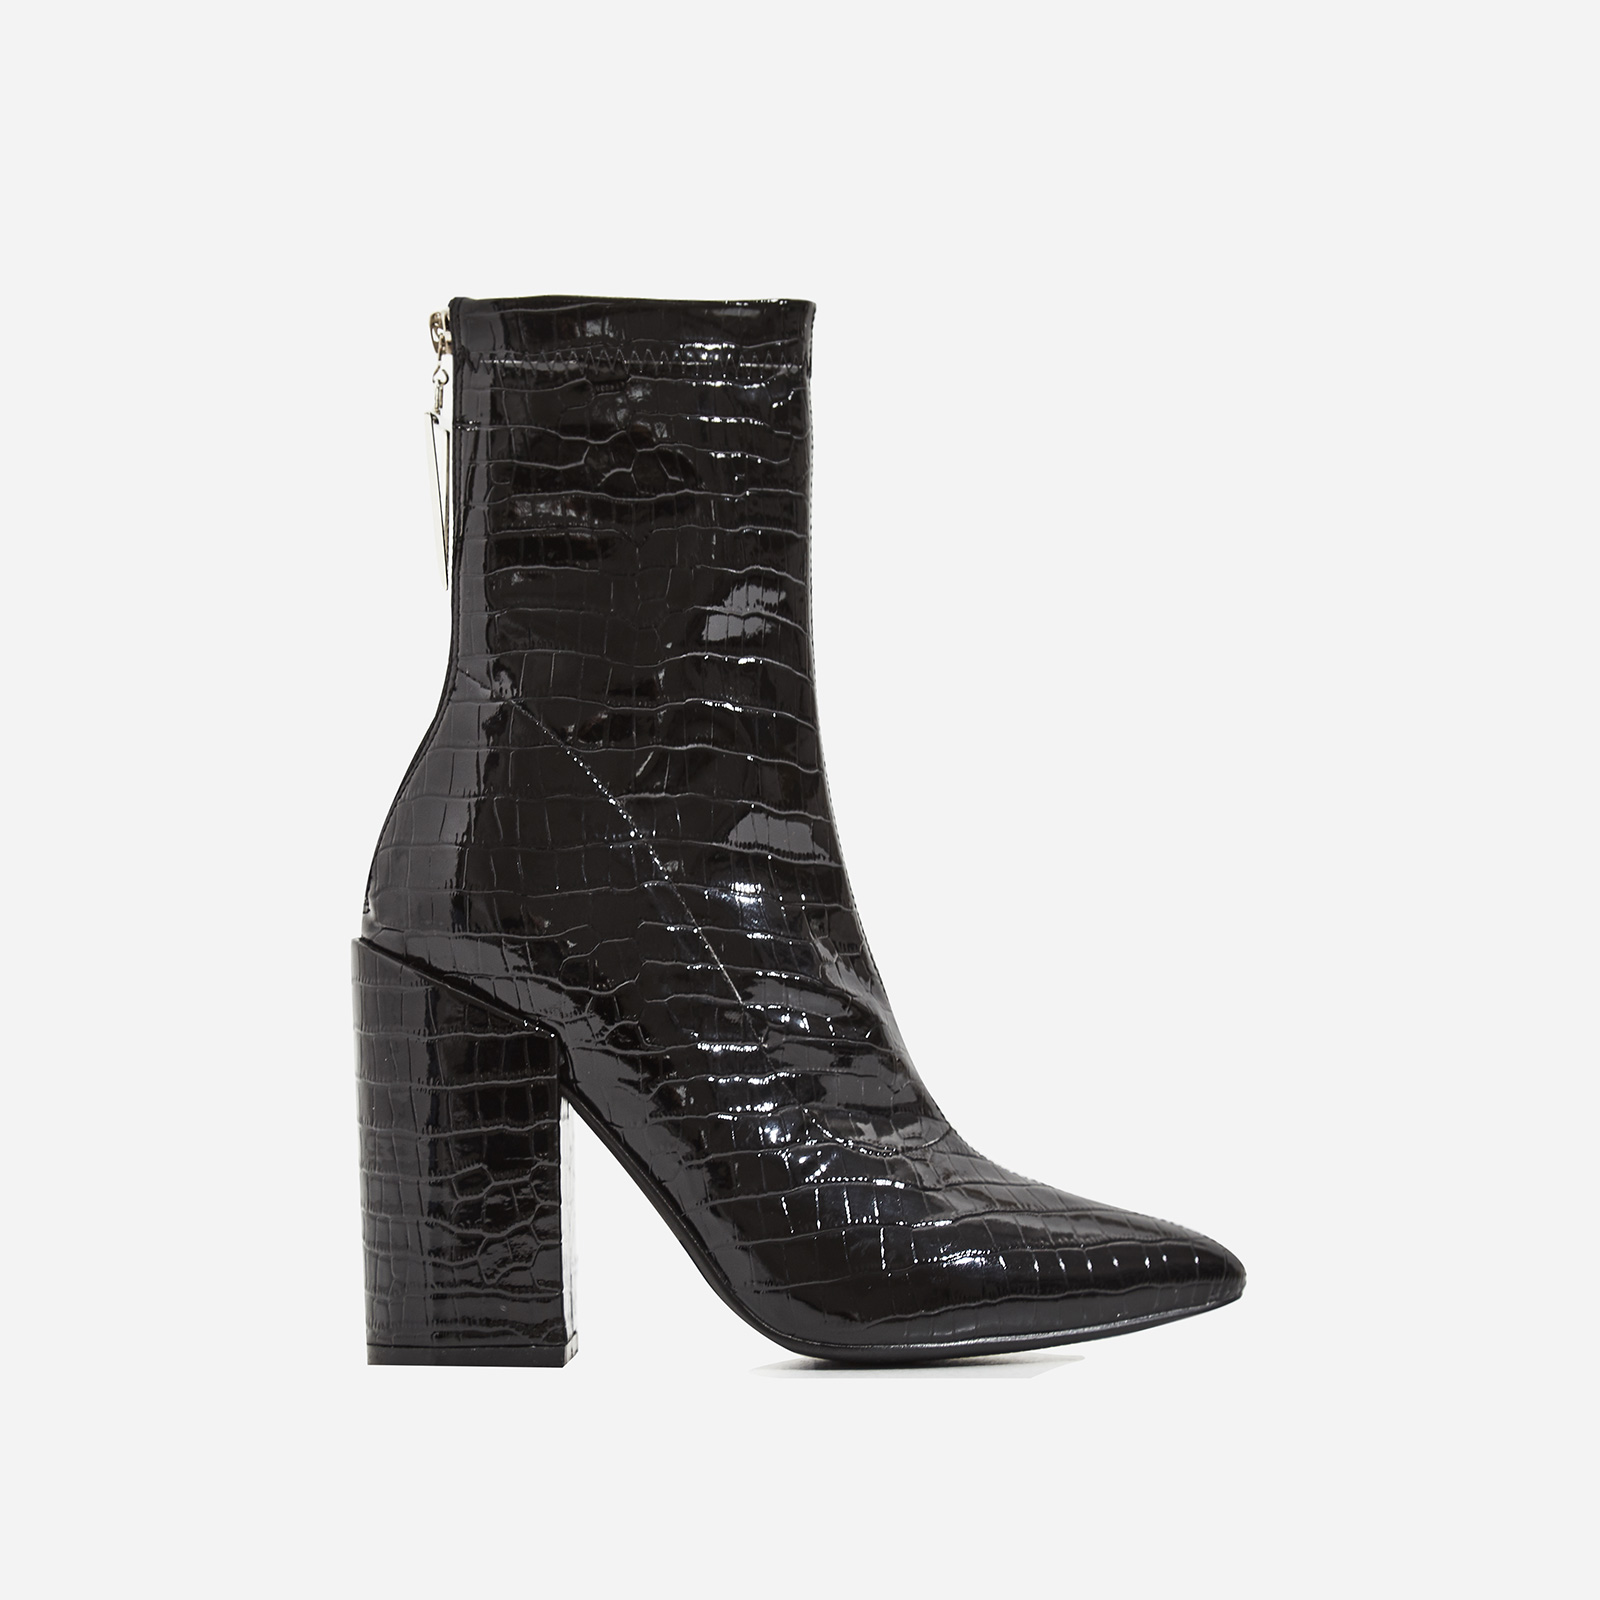 Monica Triangle Zip Detail Black Heel Ankle Boot In Black Croc Print Patent